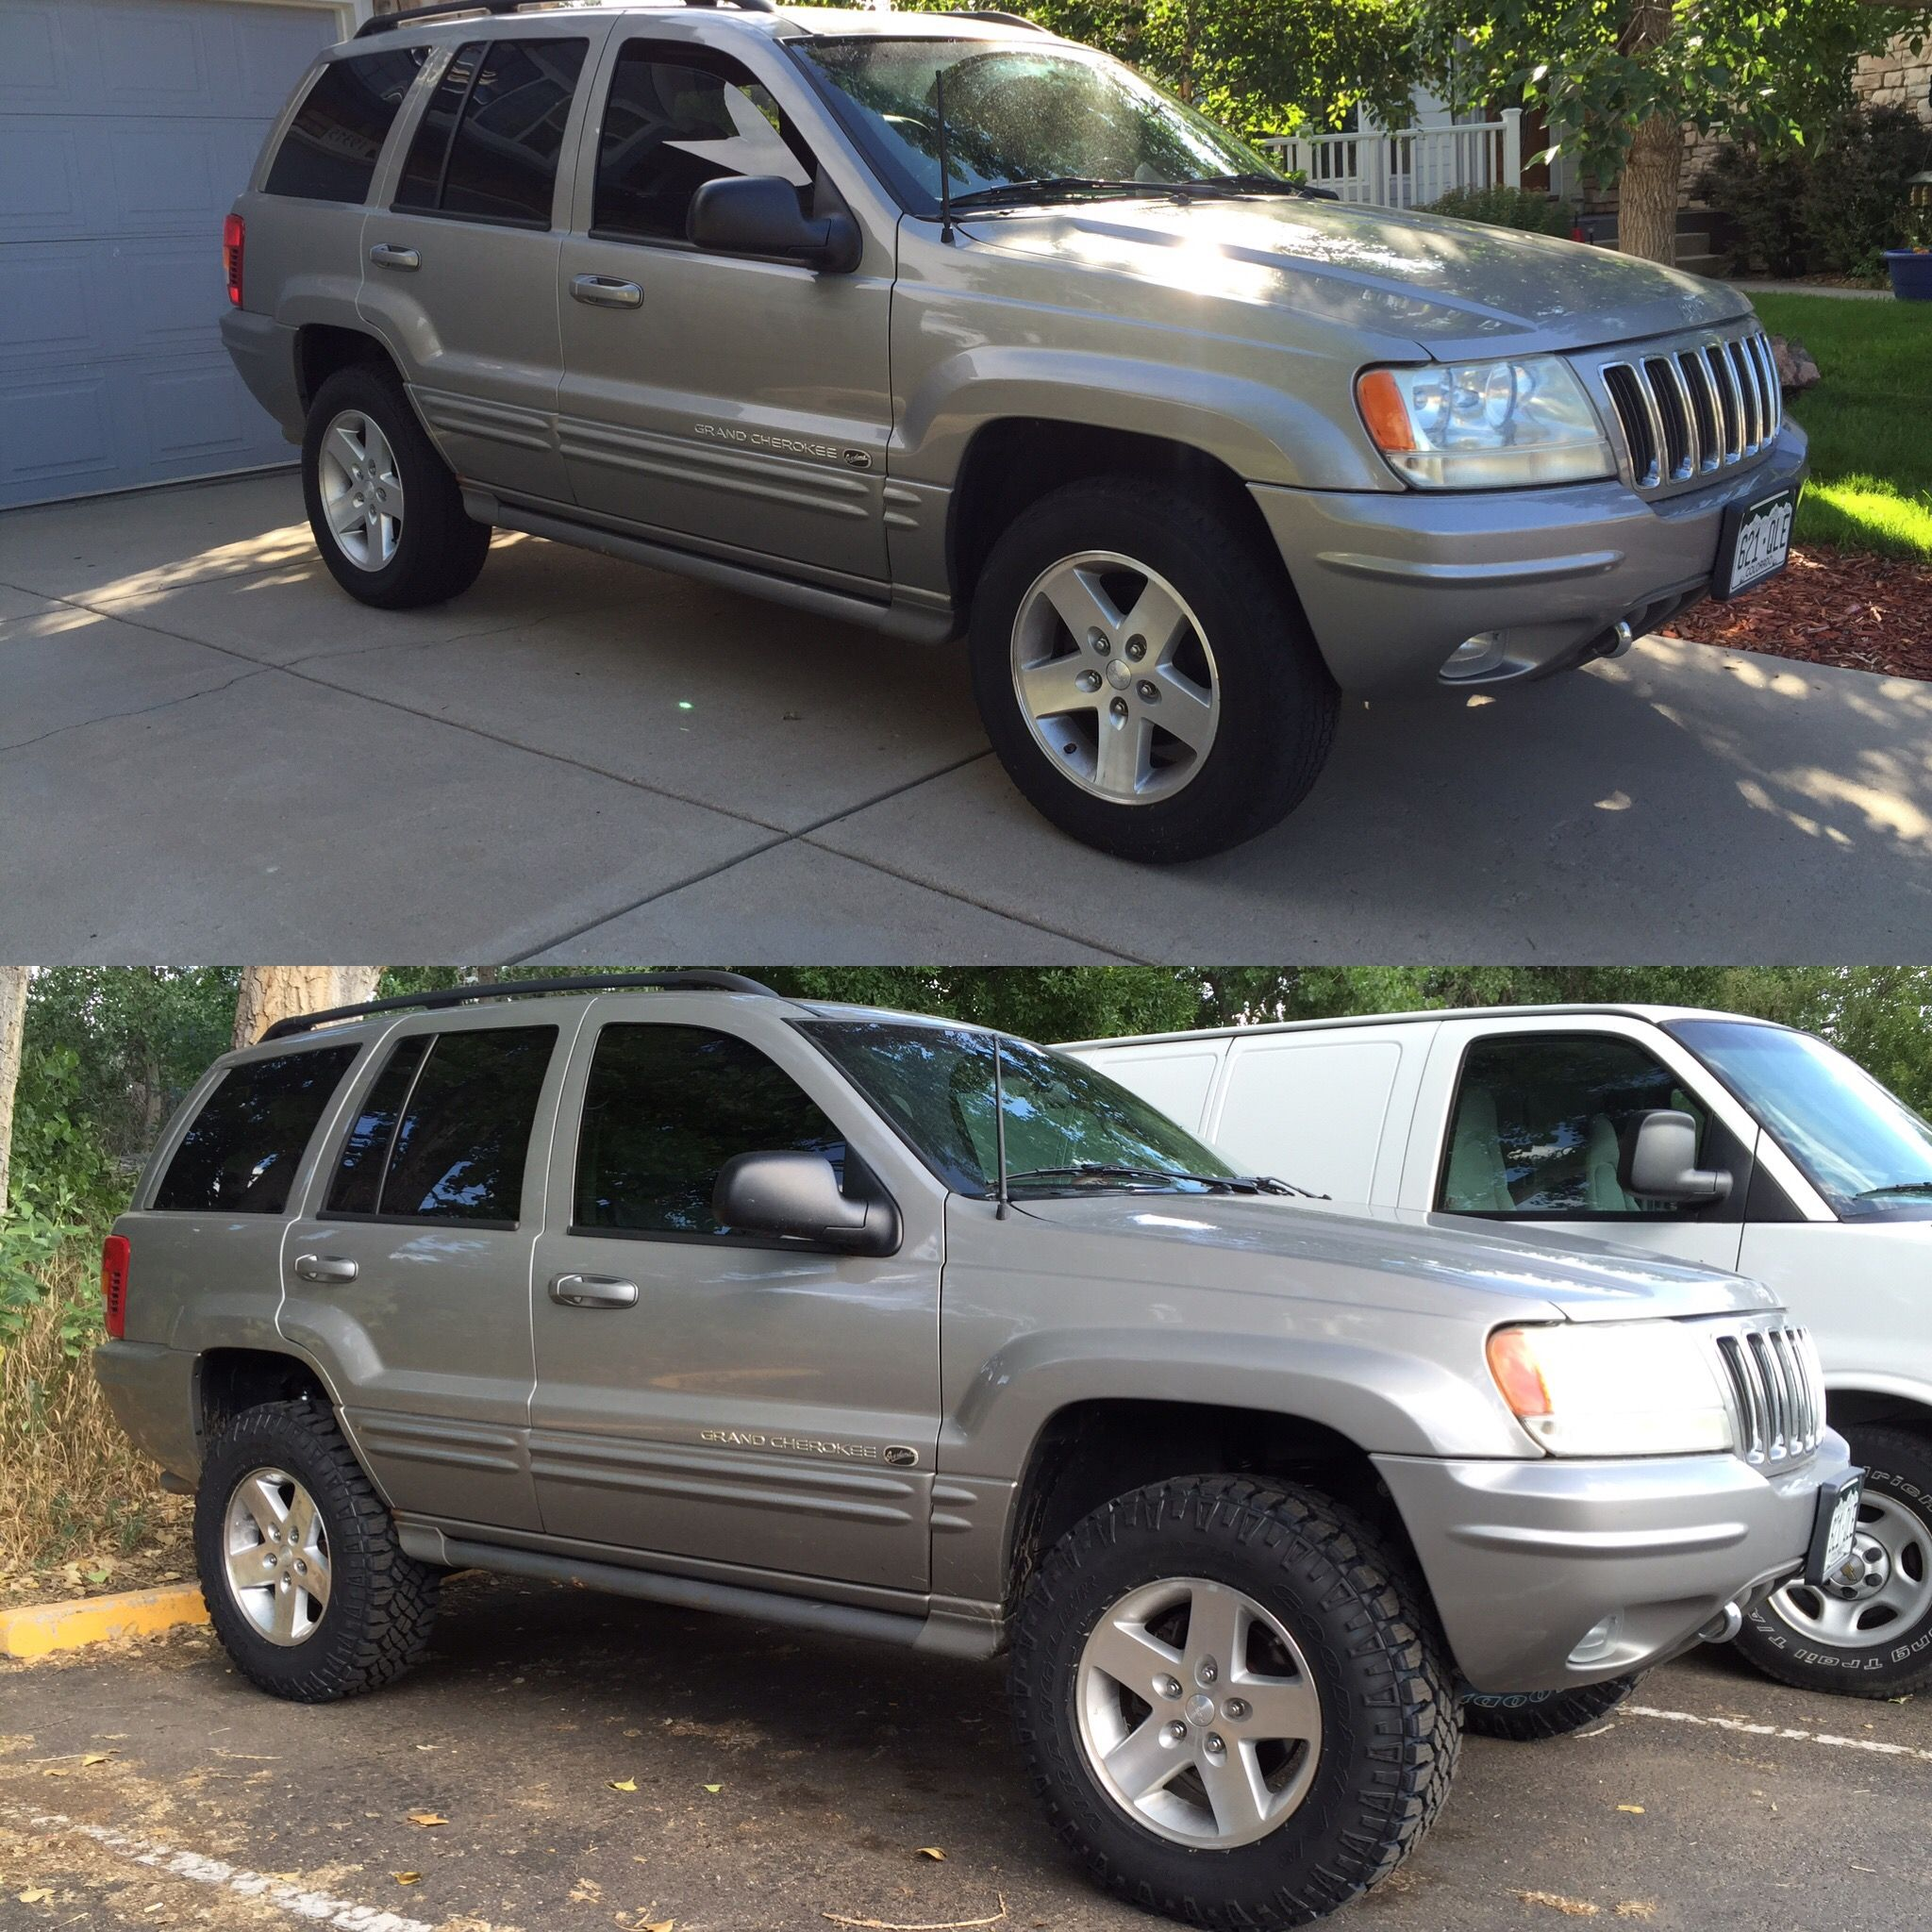 Before And After Of The Lift 3 Inch 32 Tires My Jeep 1999 Cherokee 6